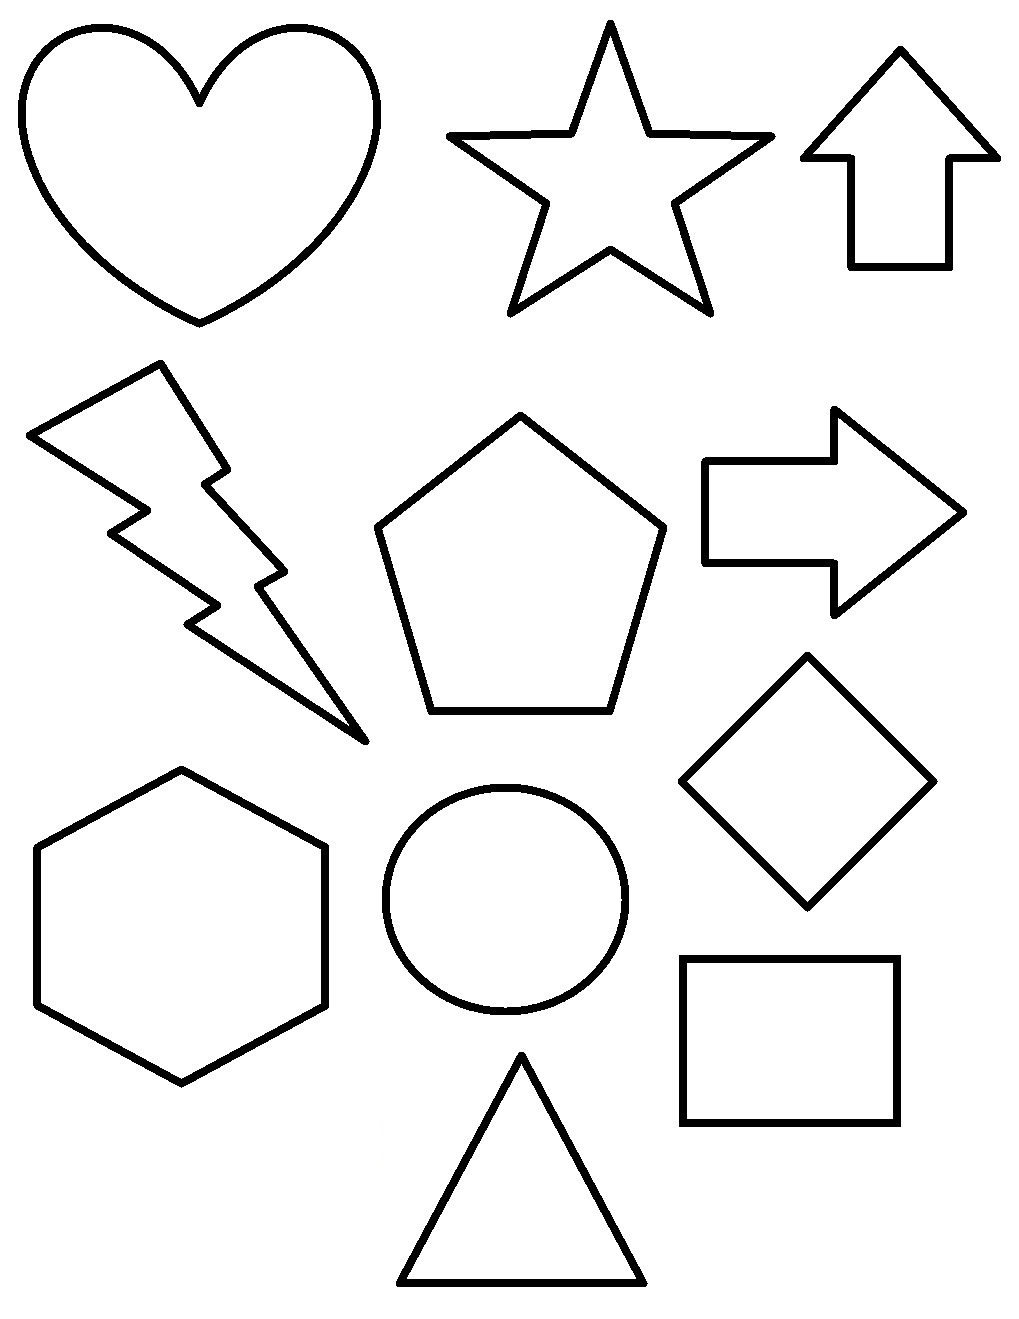 coloring pages of different shapes - photo#1